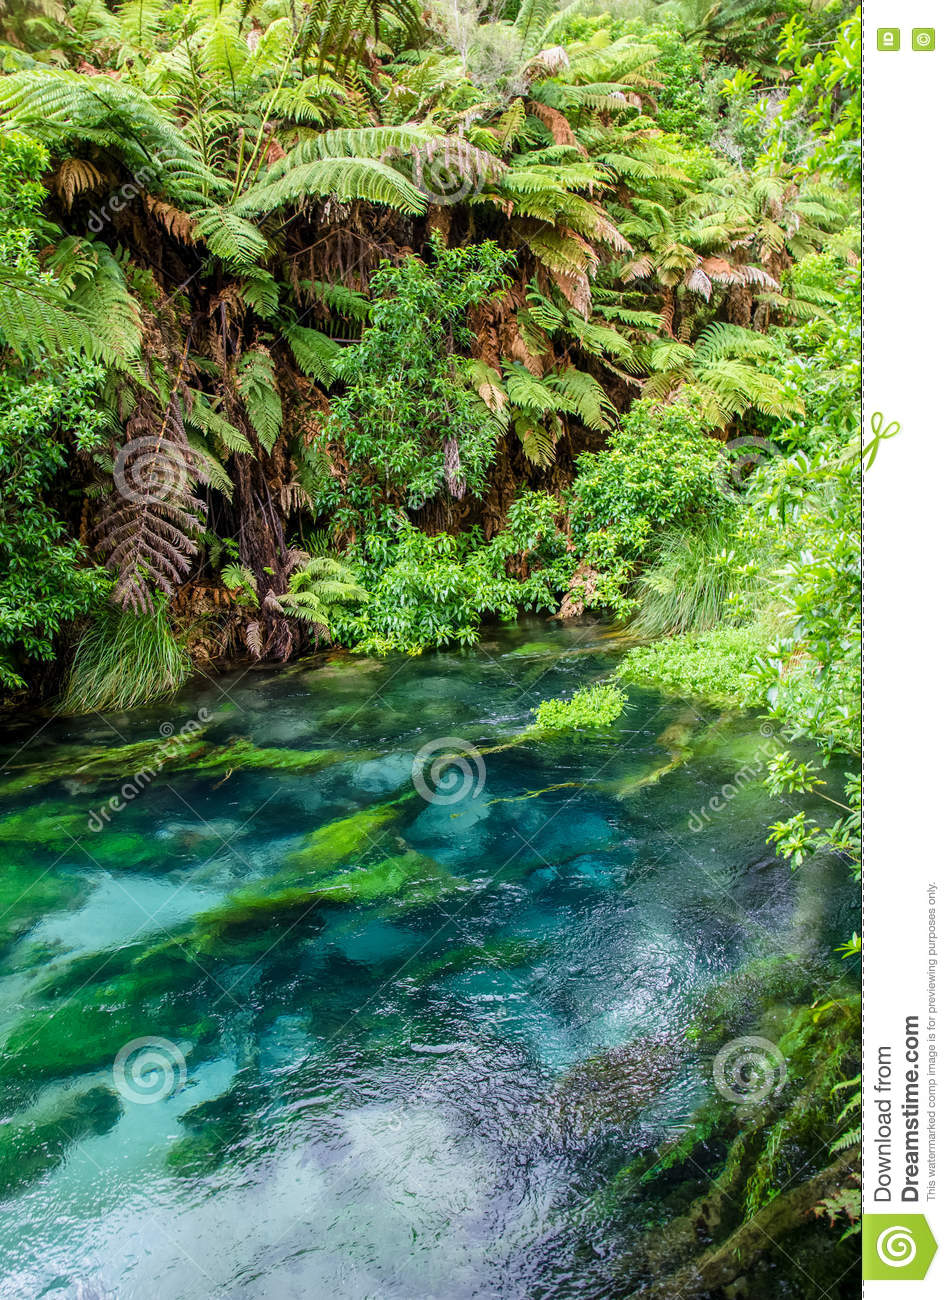 Blue Spring which is located at Te Waihou Walkway,Hamilton New Zealand.